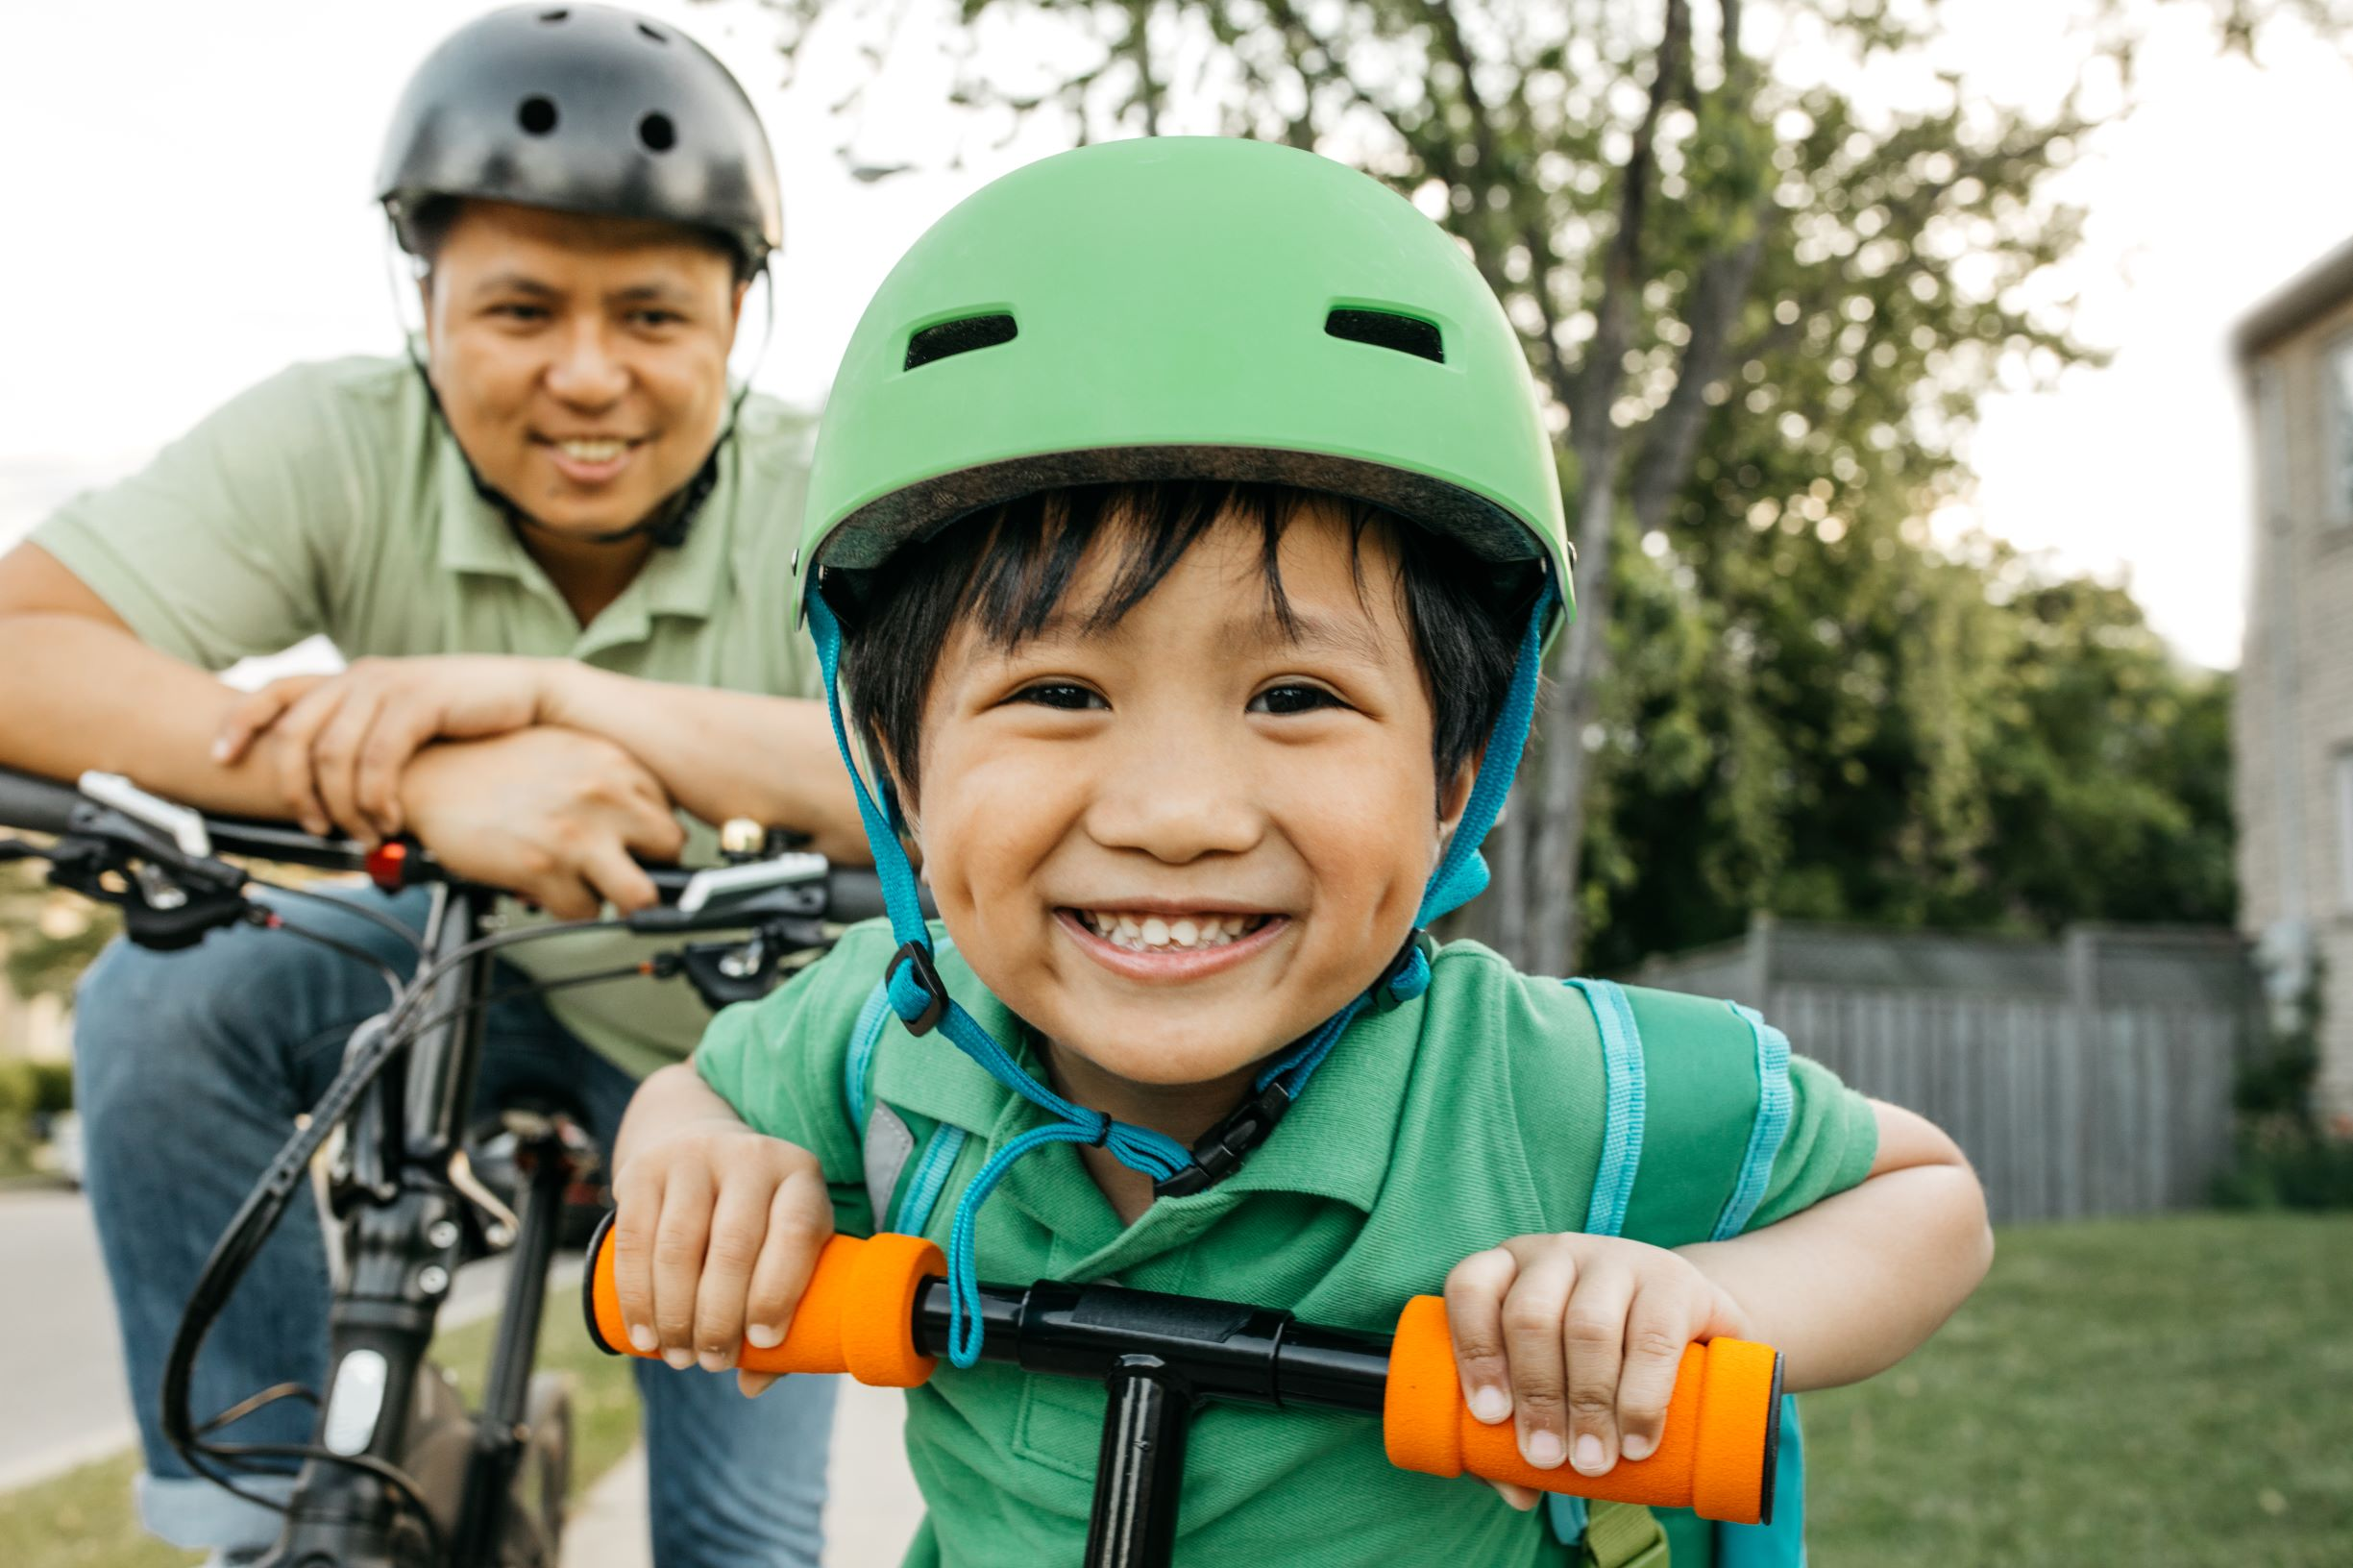 a child riding a bike grins happily at the camera